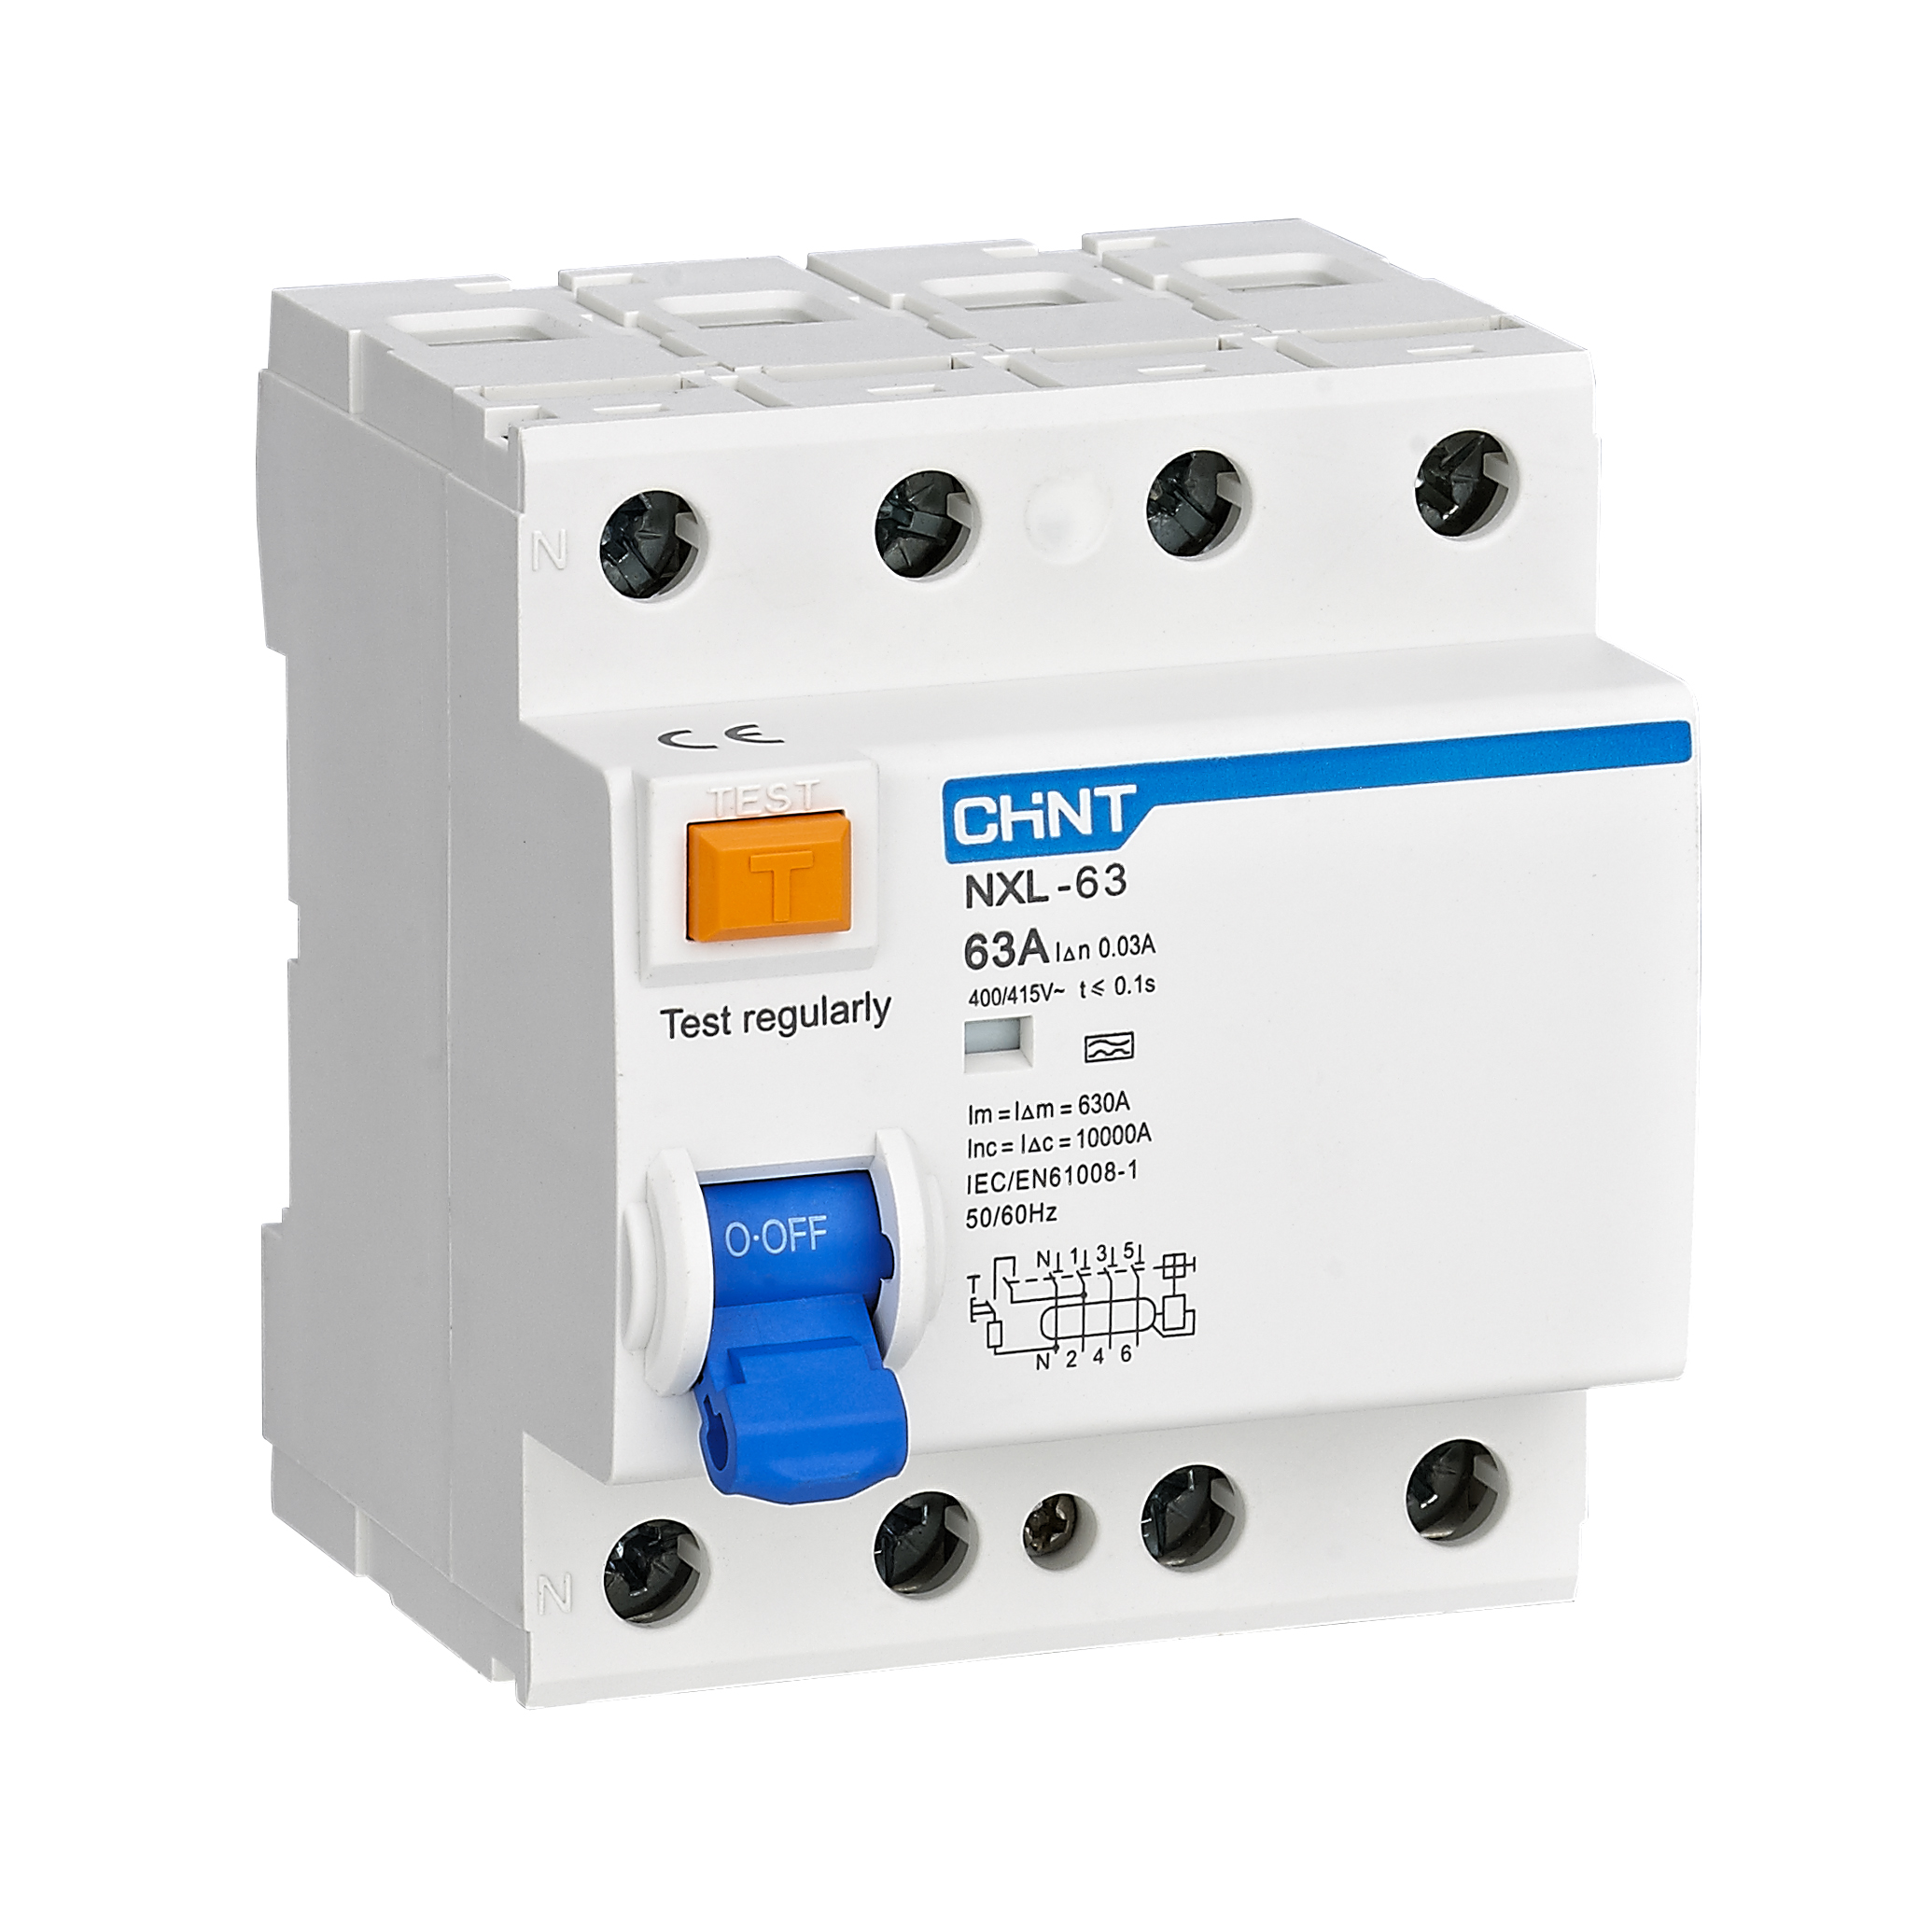 NXL-63 Residual Current Operated Circuit Breaker